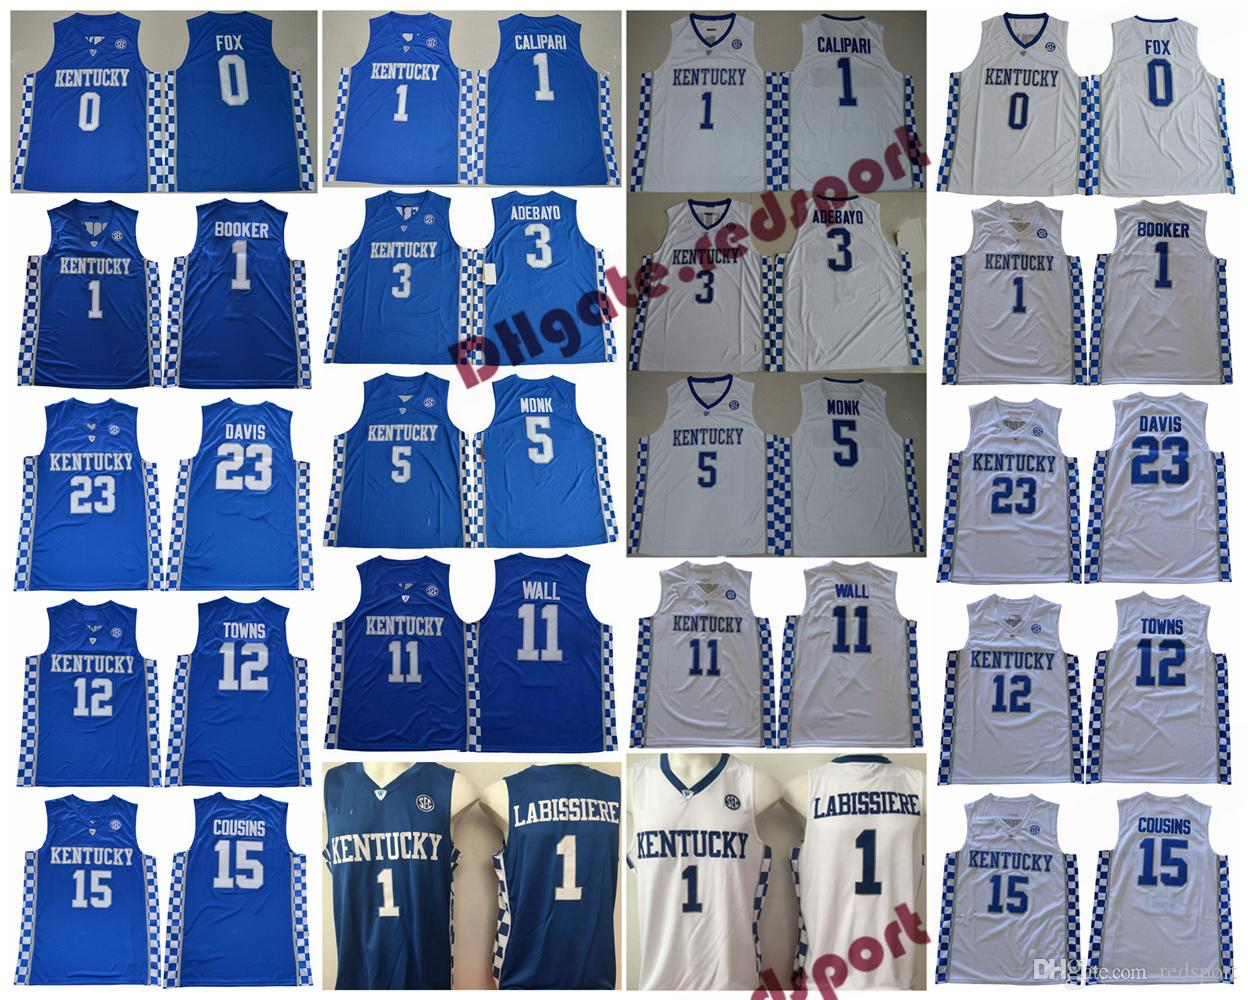 2019 Kentucky Wildcats 5 Malik Monk Calipari Adebayo 1 Booker Fox 11 John  Wall 23 Davis Labissiere 12 Towns 15 Cousins College Basketball Jerseys  From ... 8955ed904